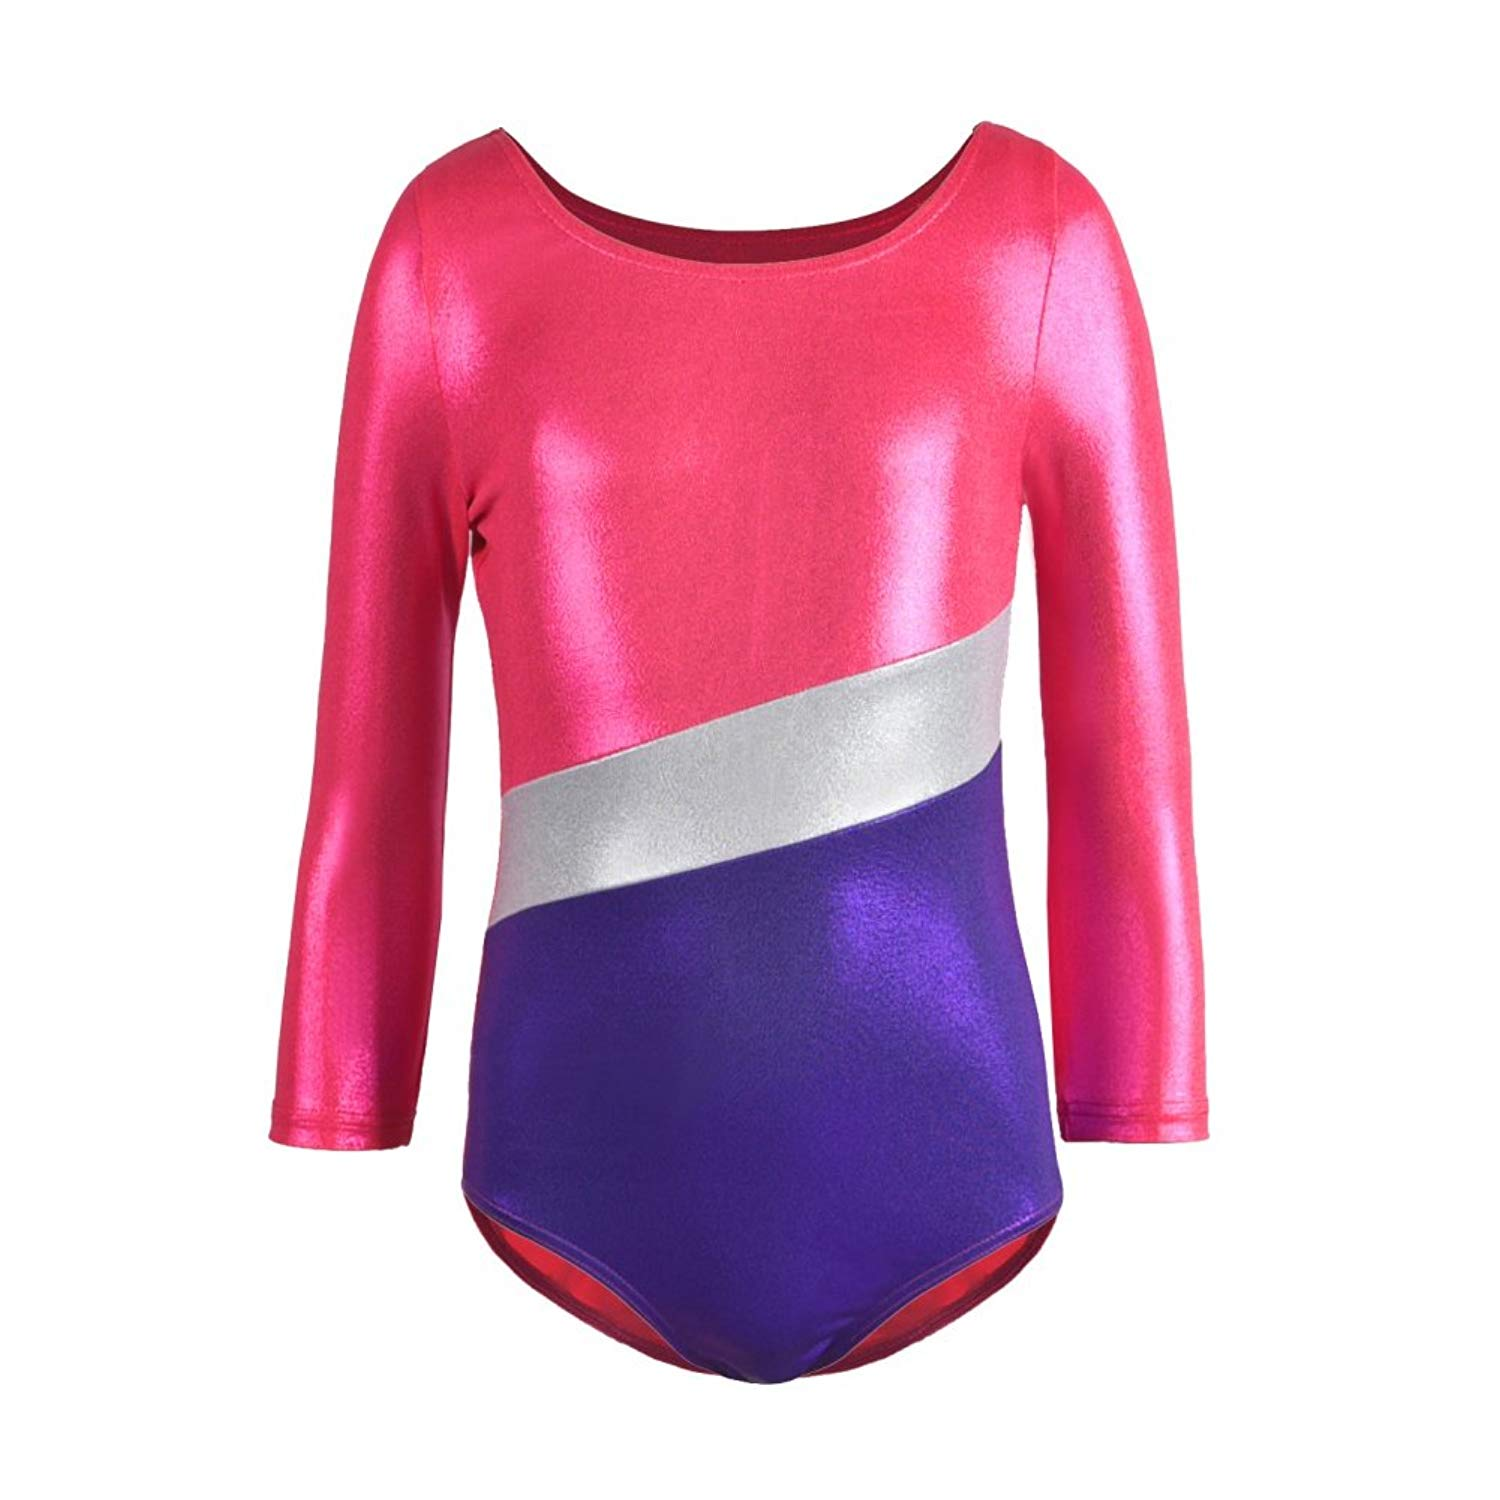 836f361b4675 Cheap Girls Hot Pink Leotard